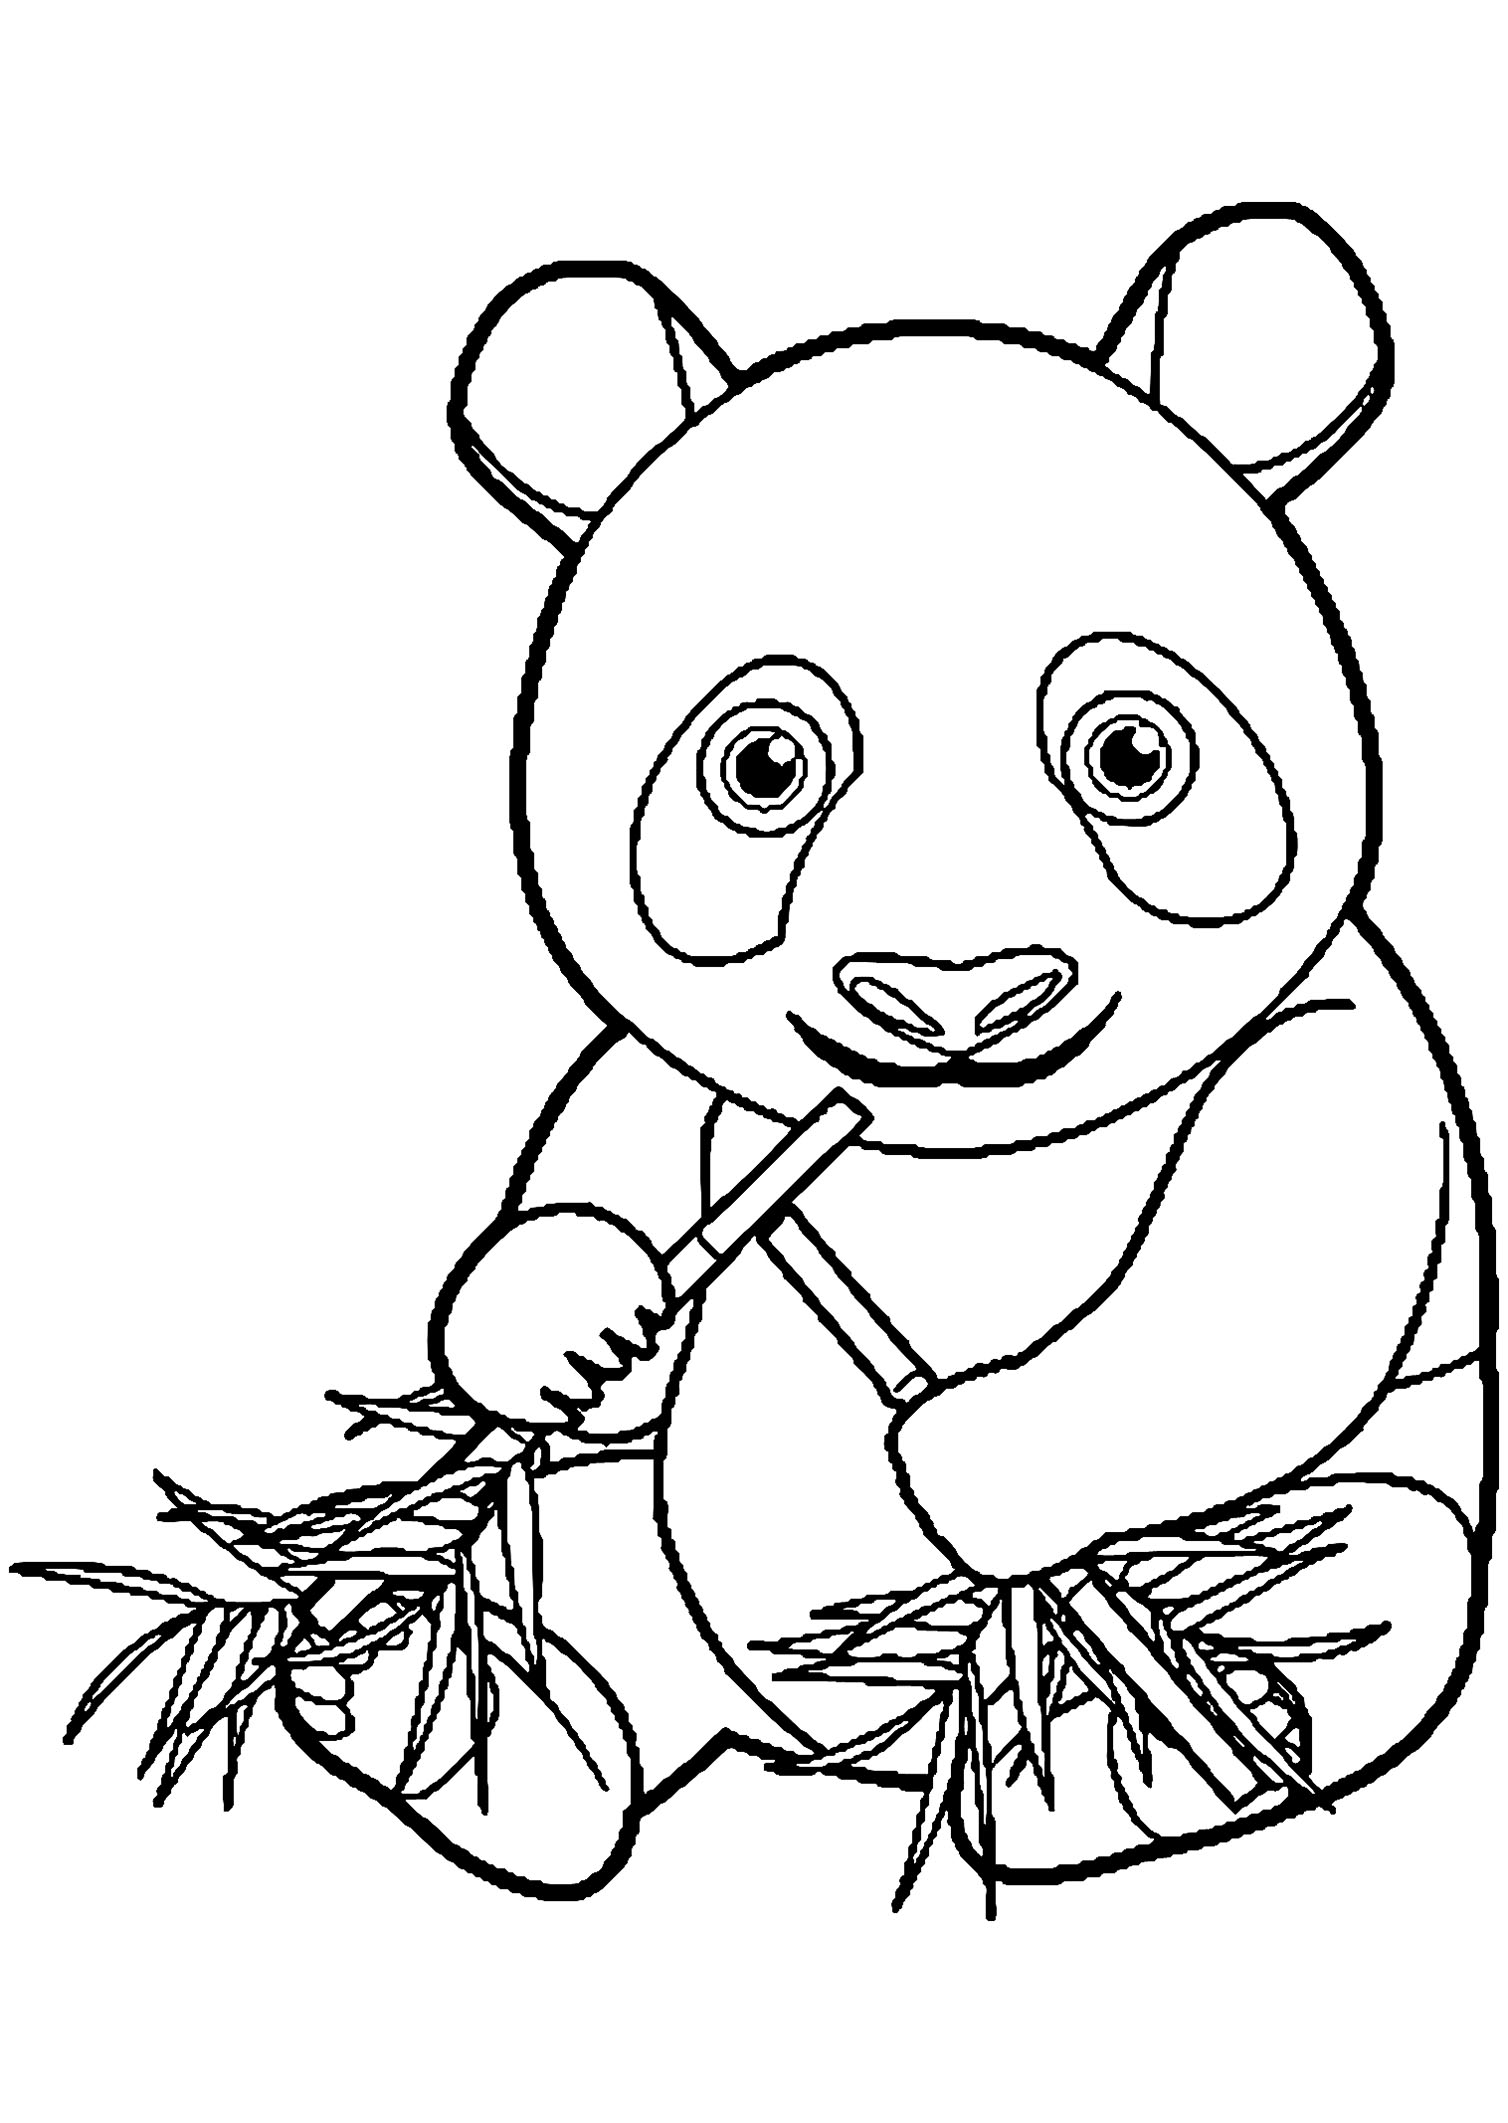 pandas coloring pages panda coloring pages for adults coloring home pages pandas coloring